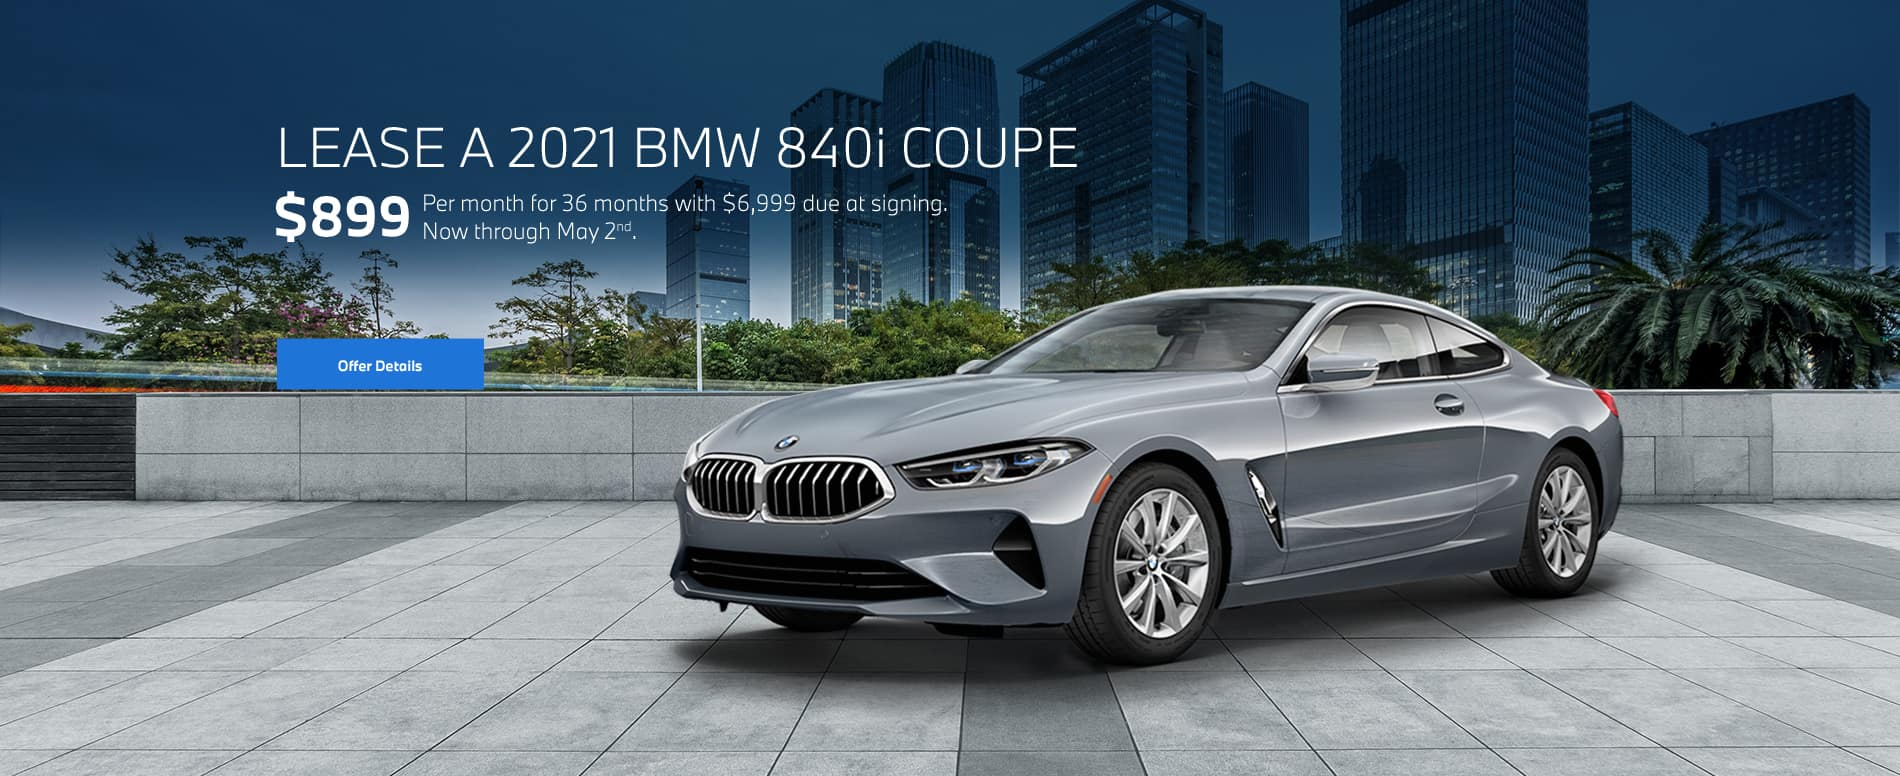 8 series coupe with cityscape background